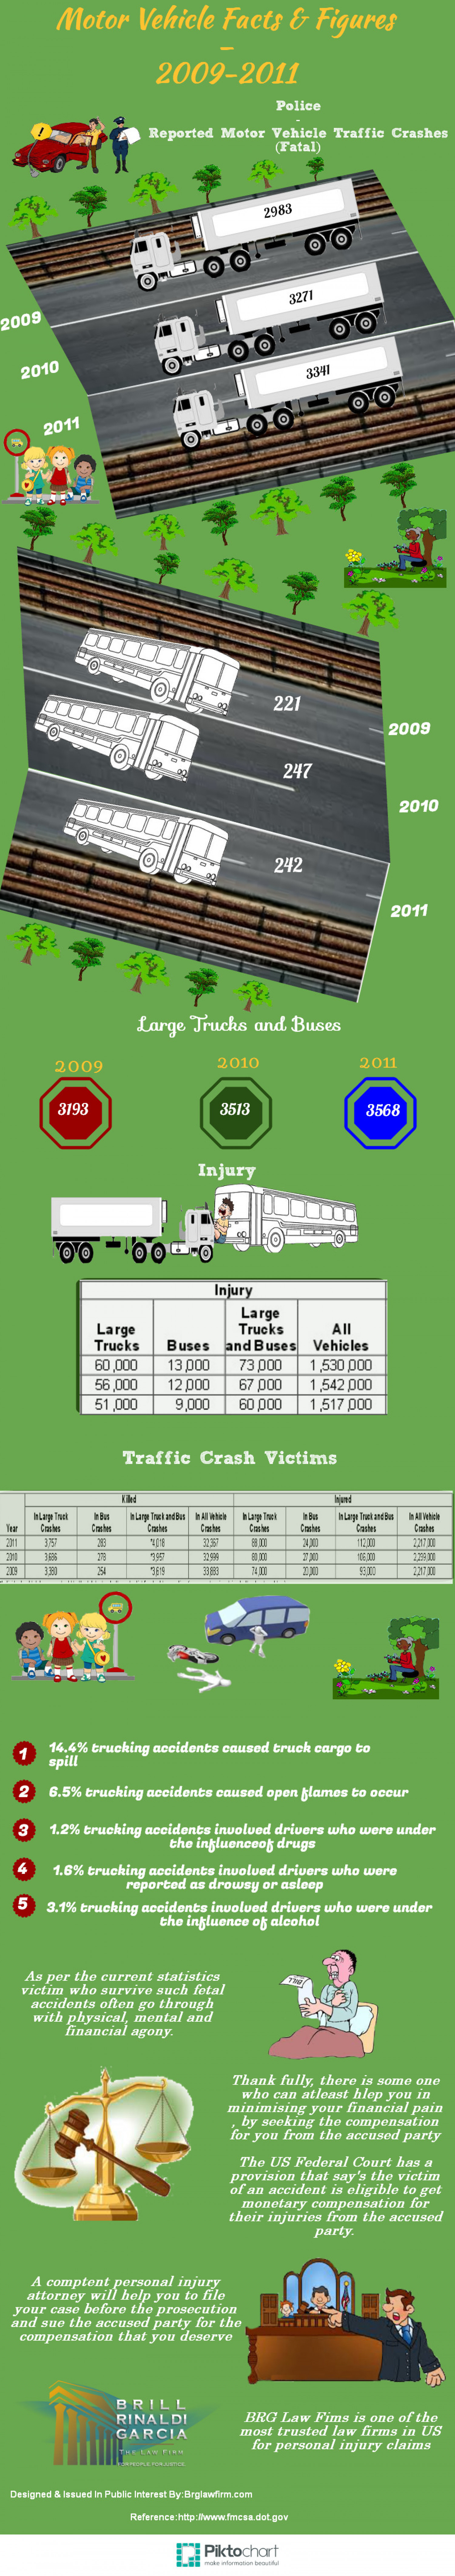 Motor Vehicle Facts & Figures - 2009-2011 Infographic